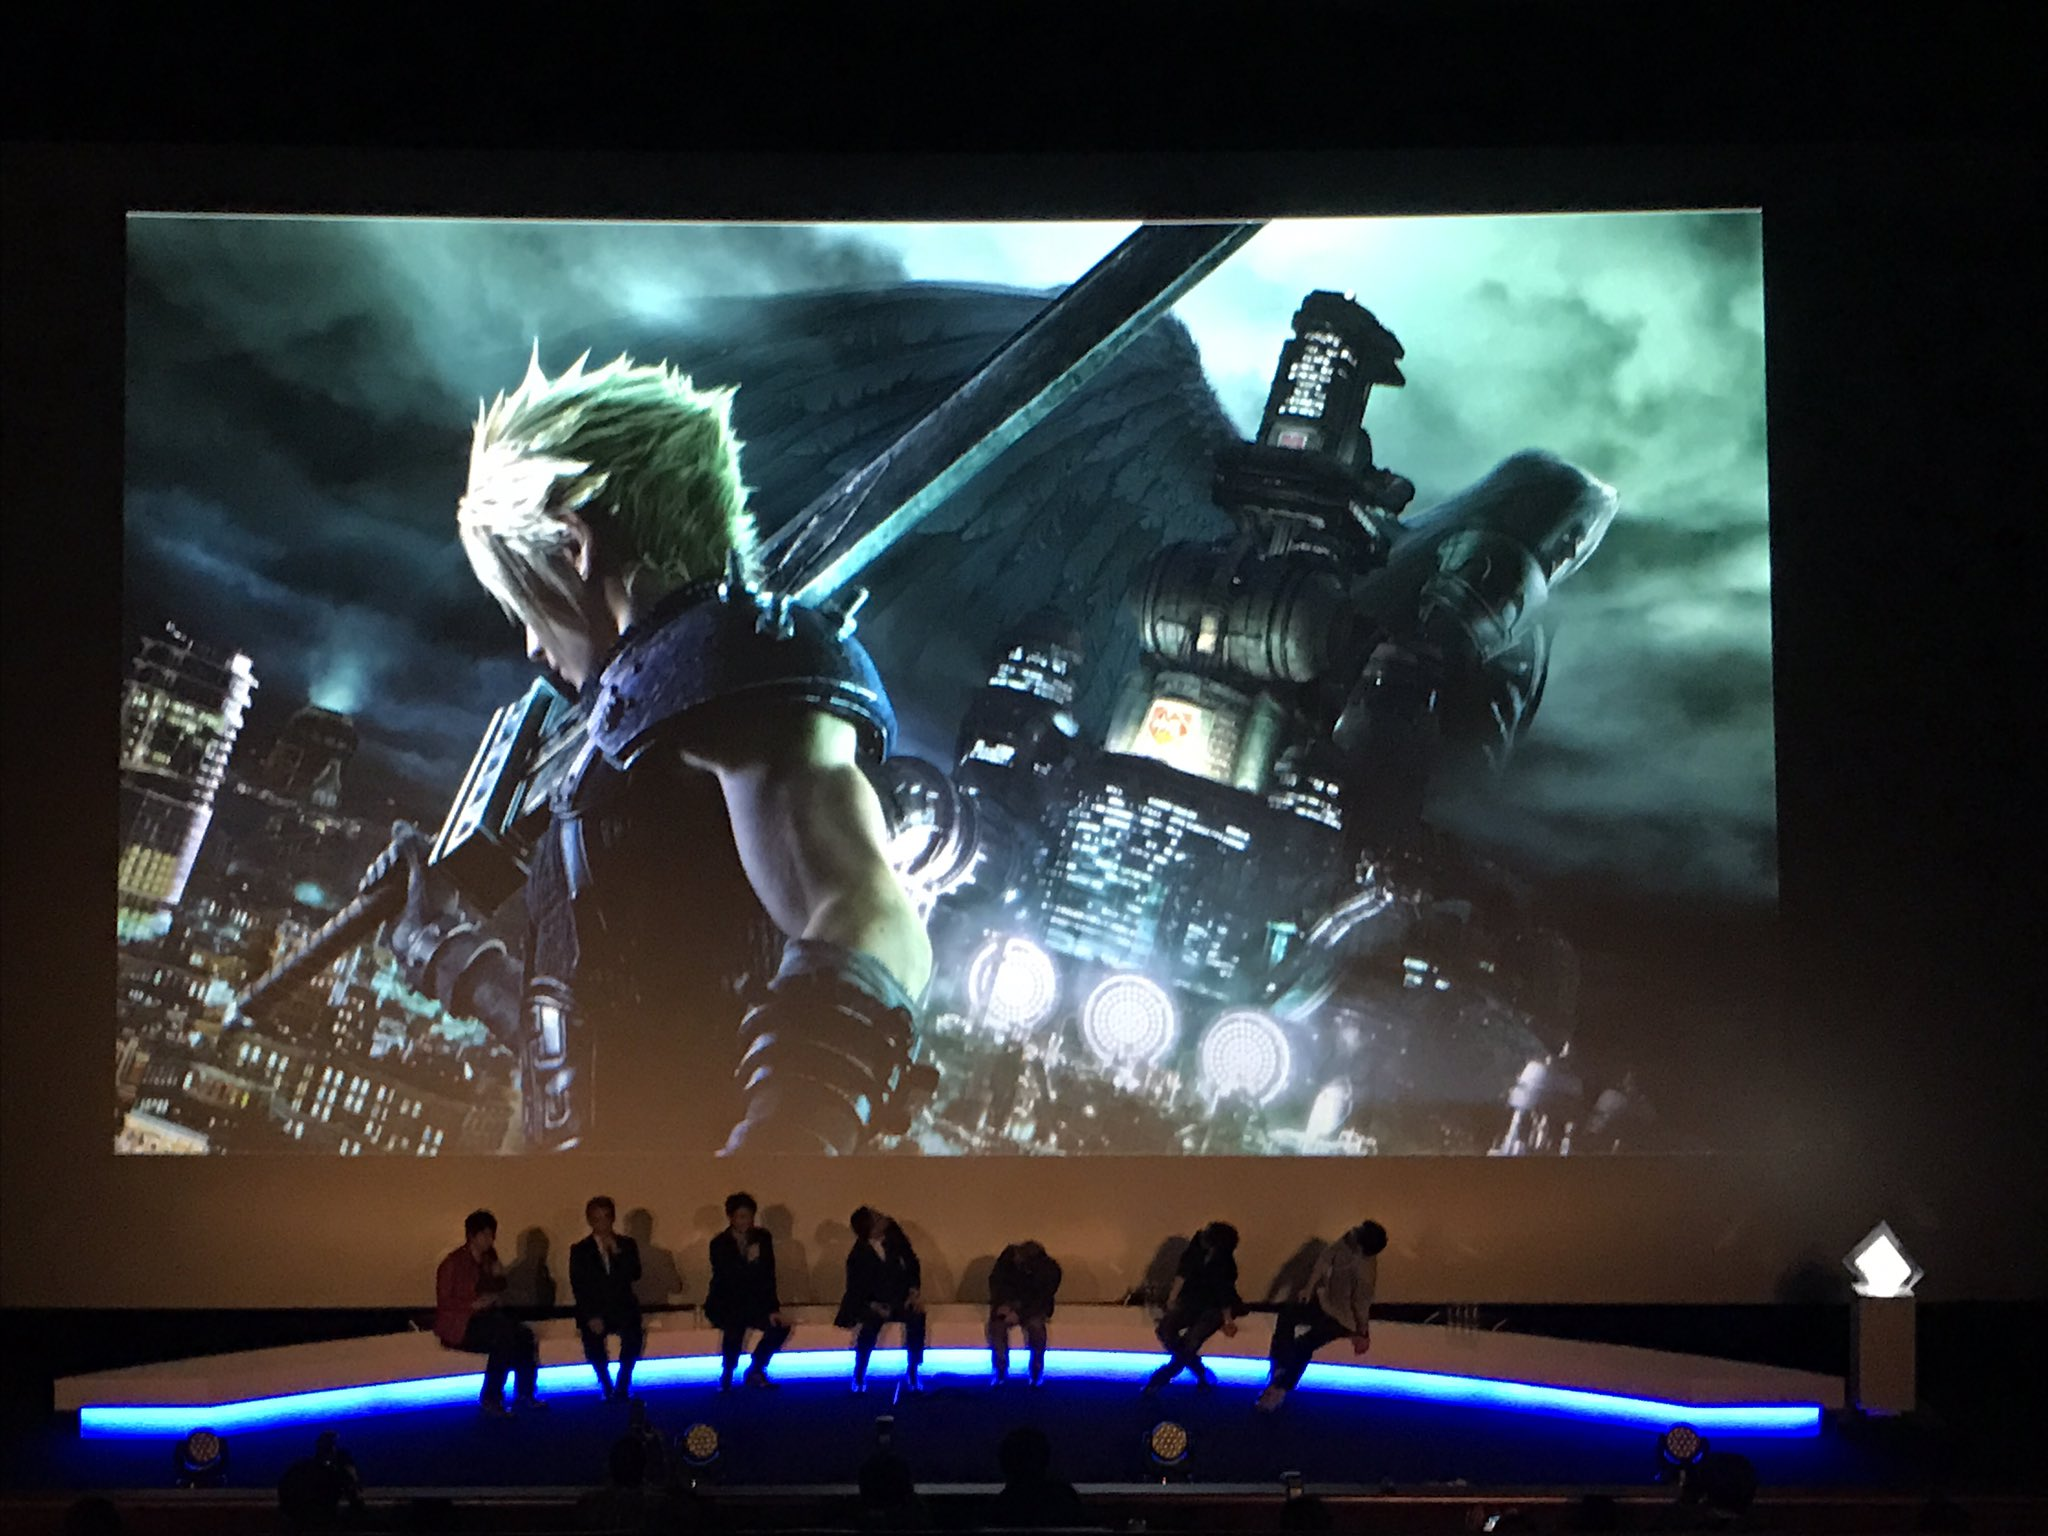 ff7-remake-visual